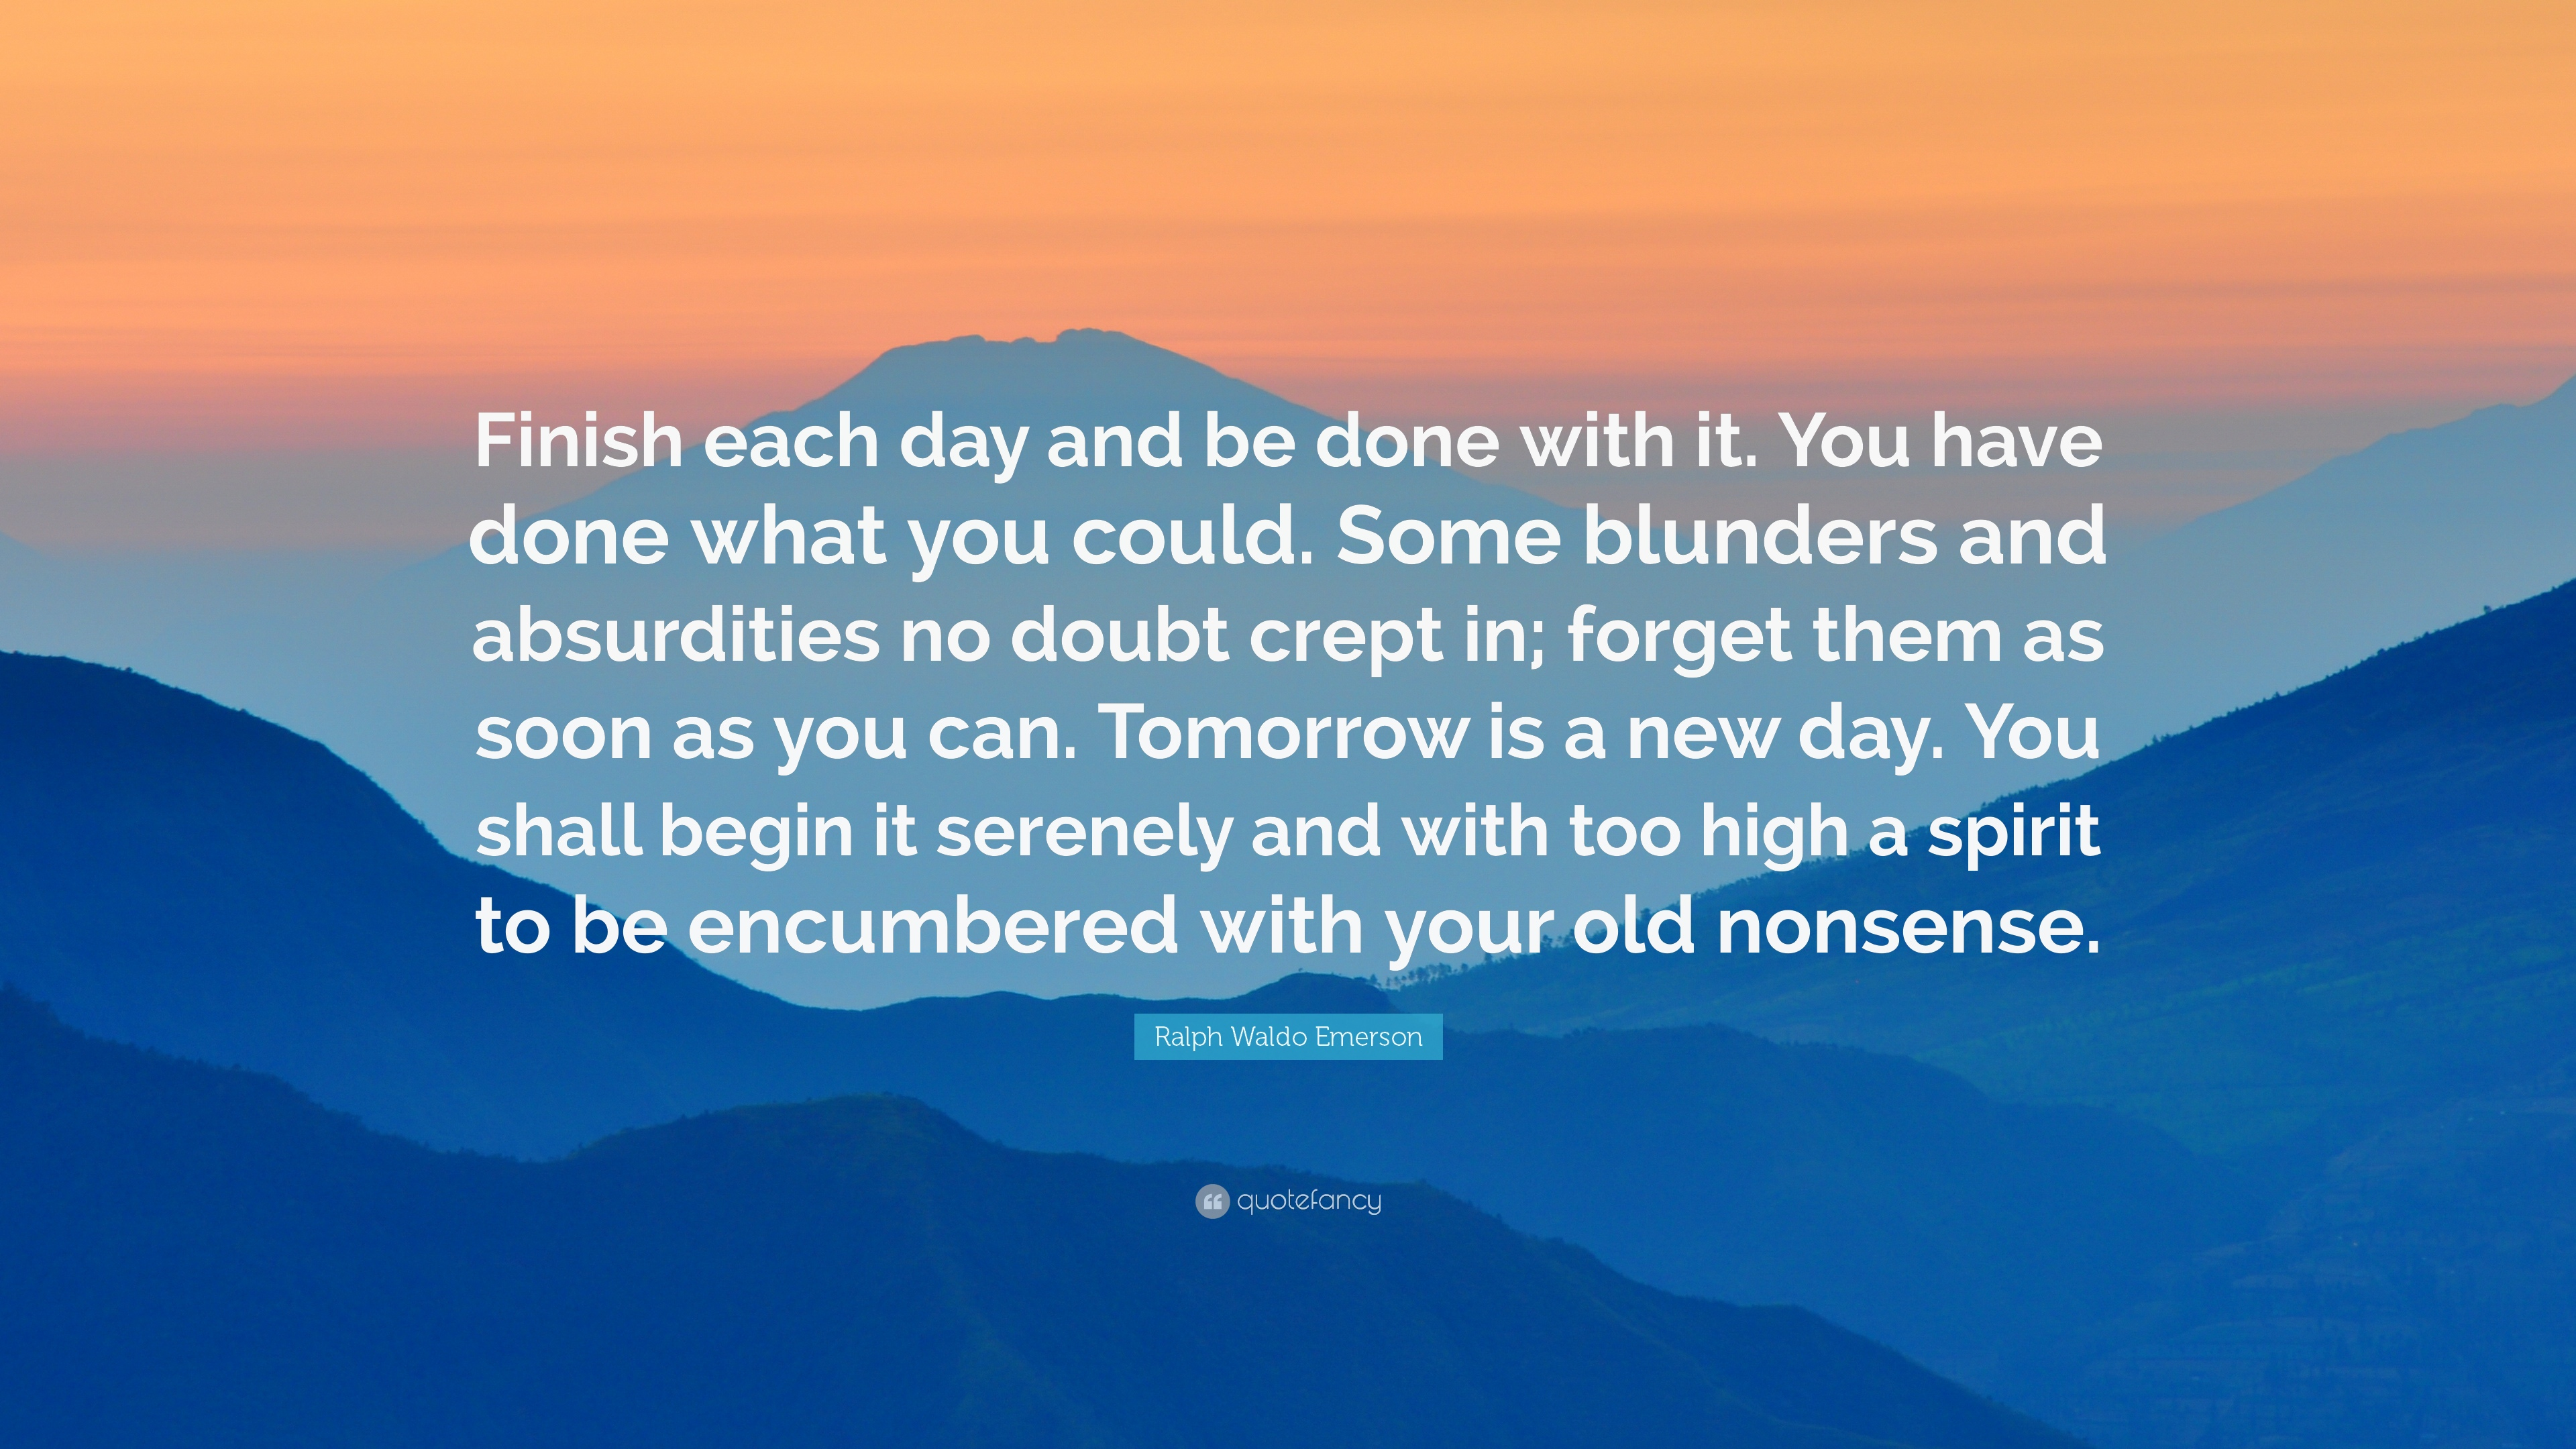 finish each day and be done with it emerson essay Finish each day and be done with it - emerson and the screw ups because tomorrow is a new day find this pin and more on word by poems, and essay emerson.